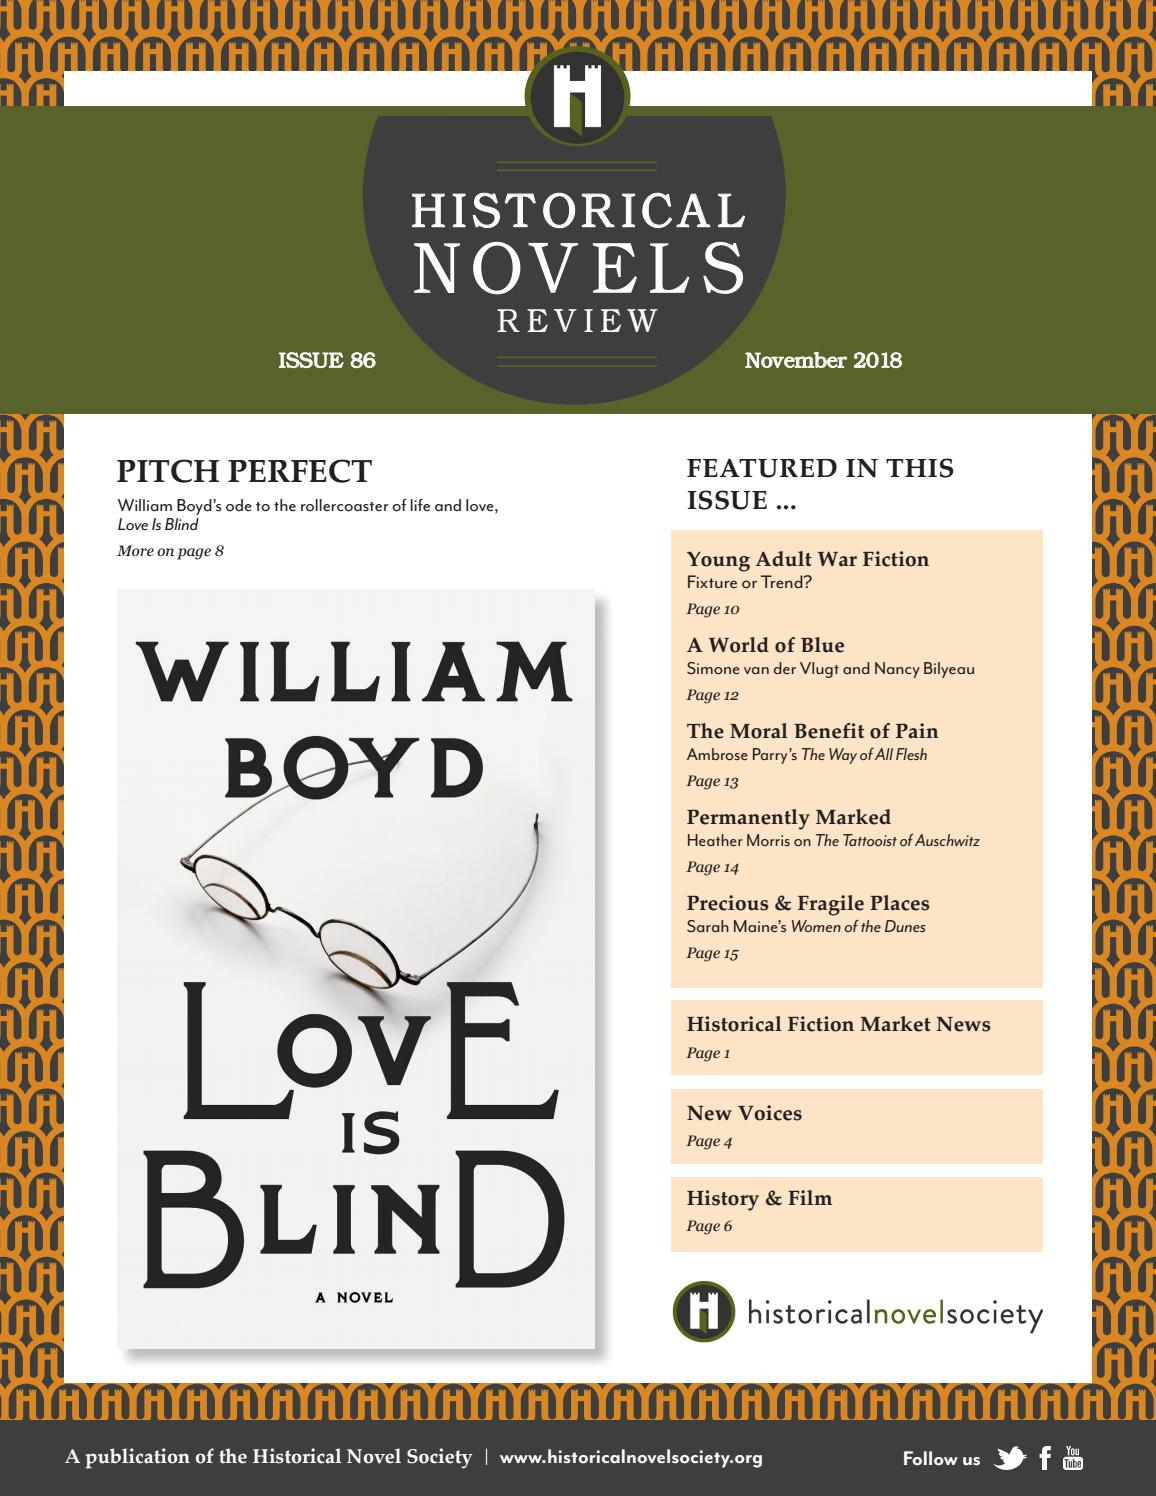 Historical Novels Review Issue 86 November 2018 By The Historical Novel Society Issuu